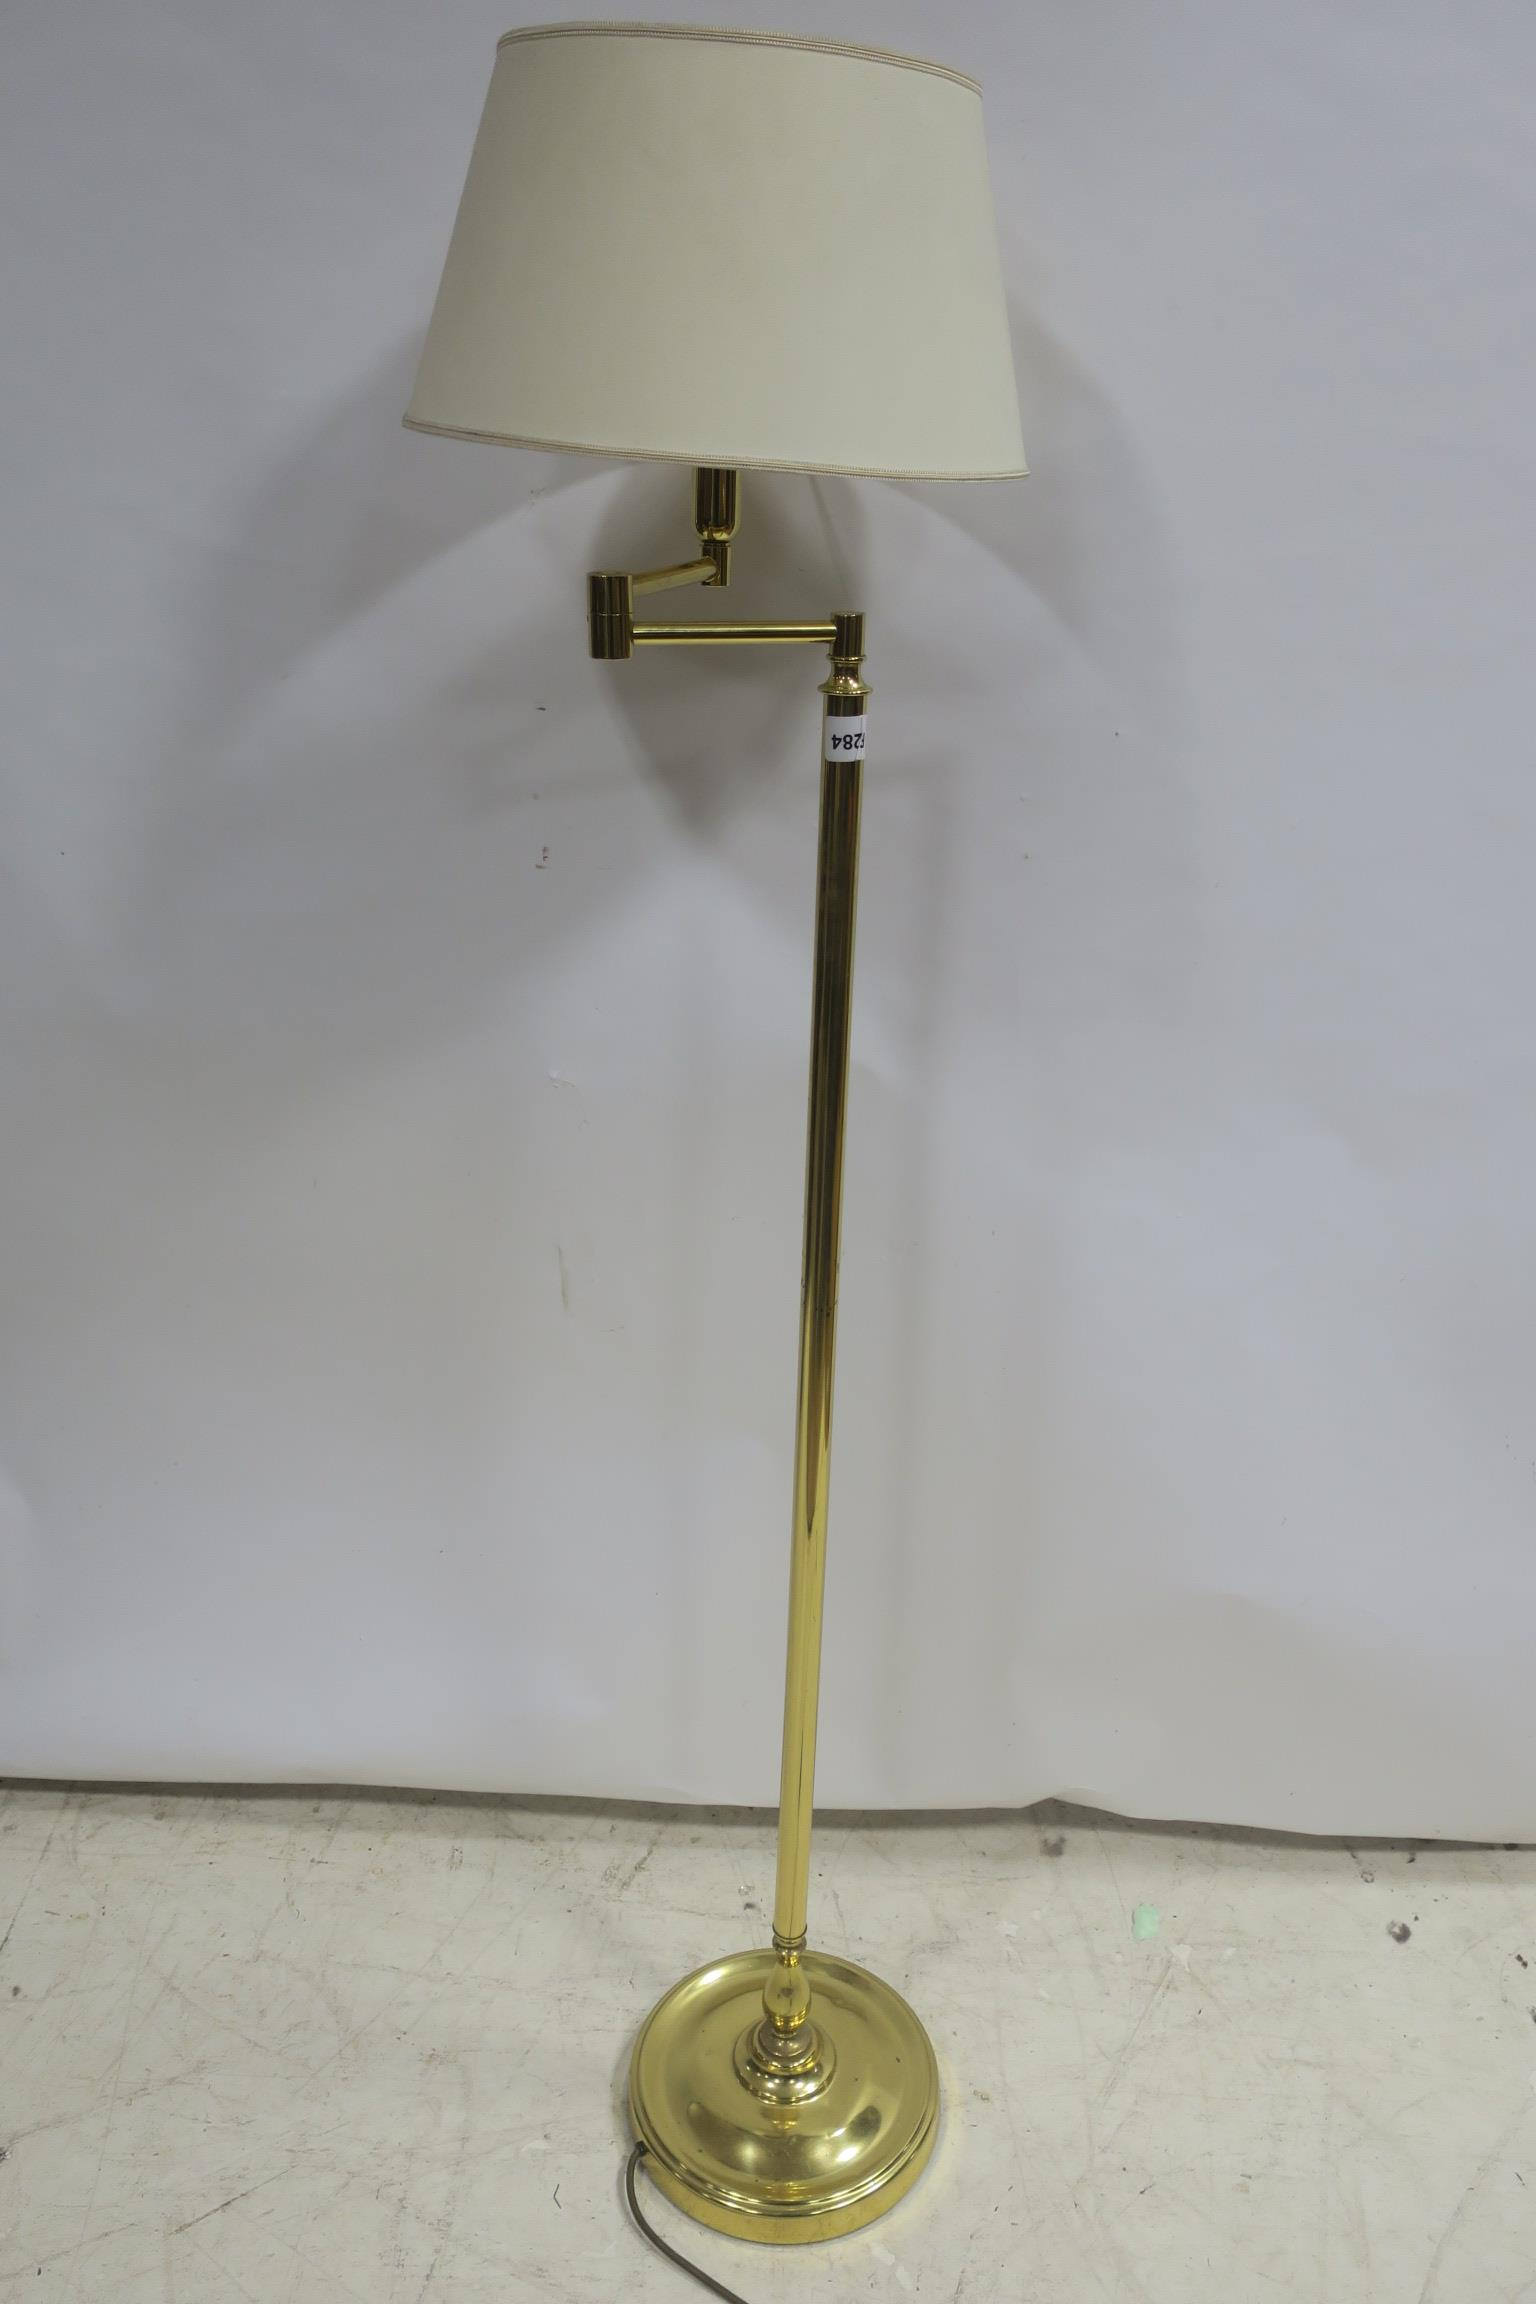 Lot 36 - A BRASS ADJUSTABLE FLOOR STANDARD LAMP the cylindrical column on a circular spreading foot together